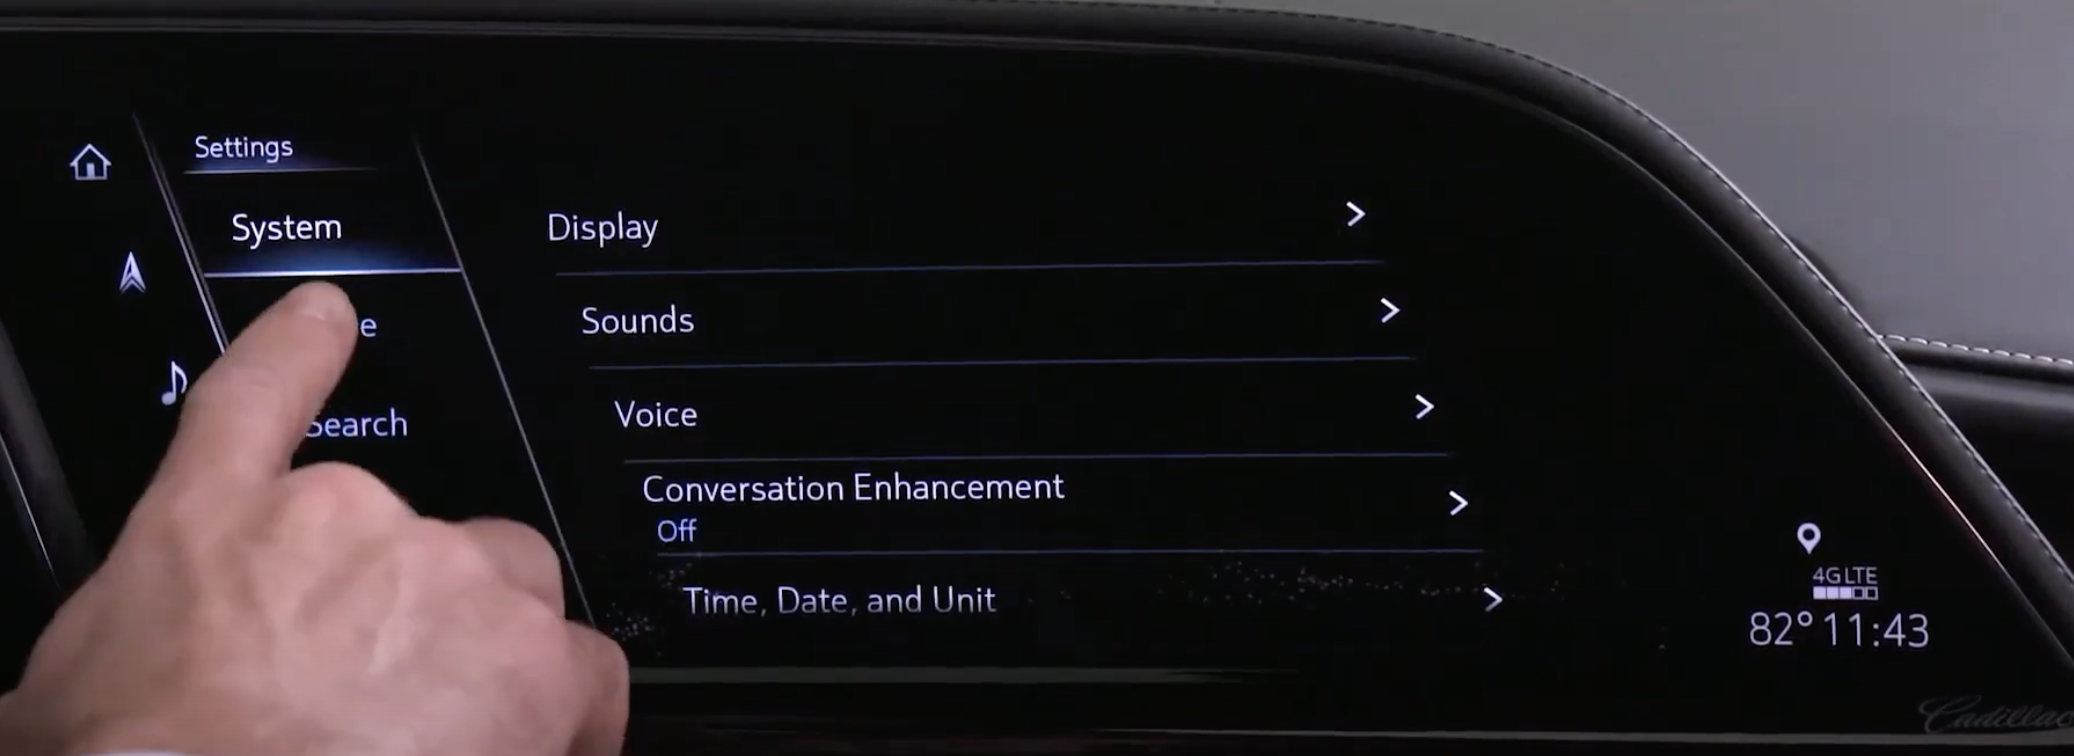 List of various system settings for the infotainment such as display settings and sound settings